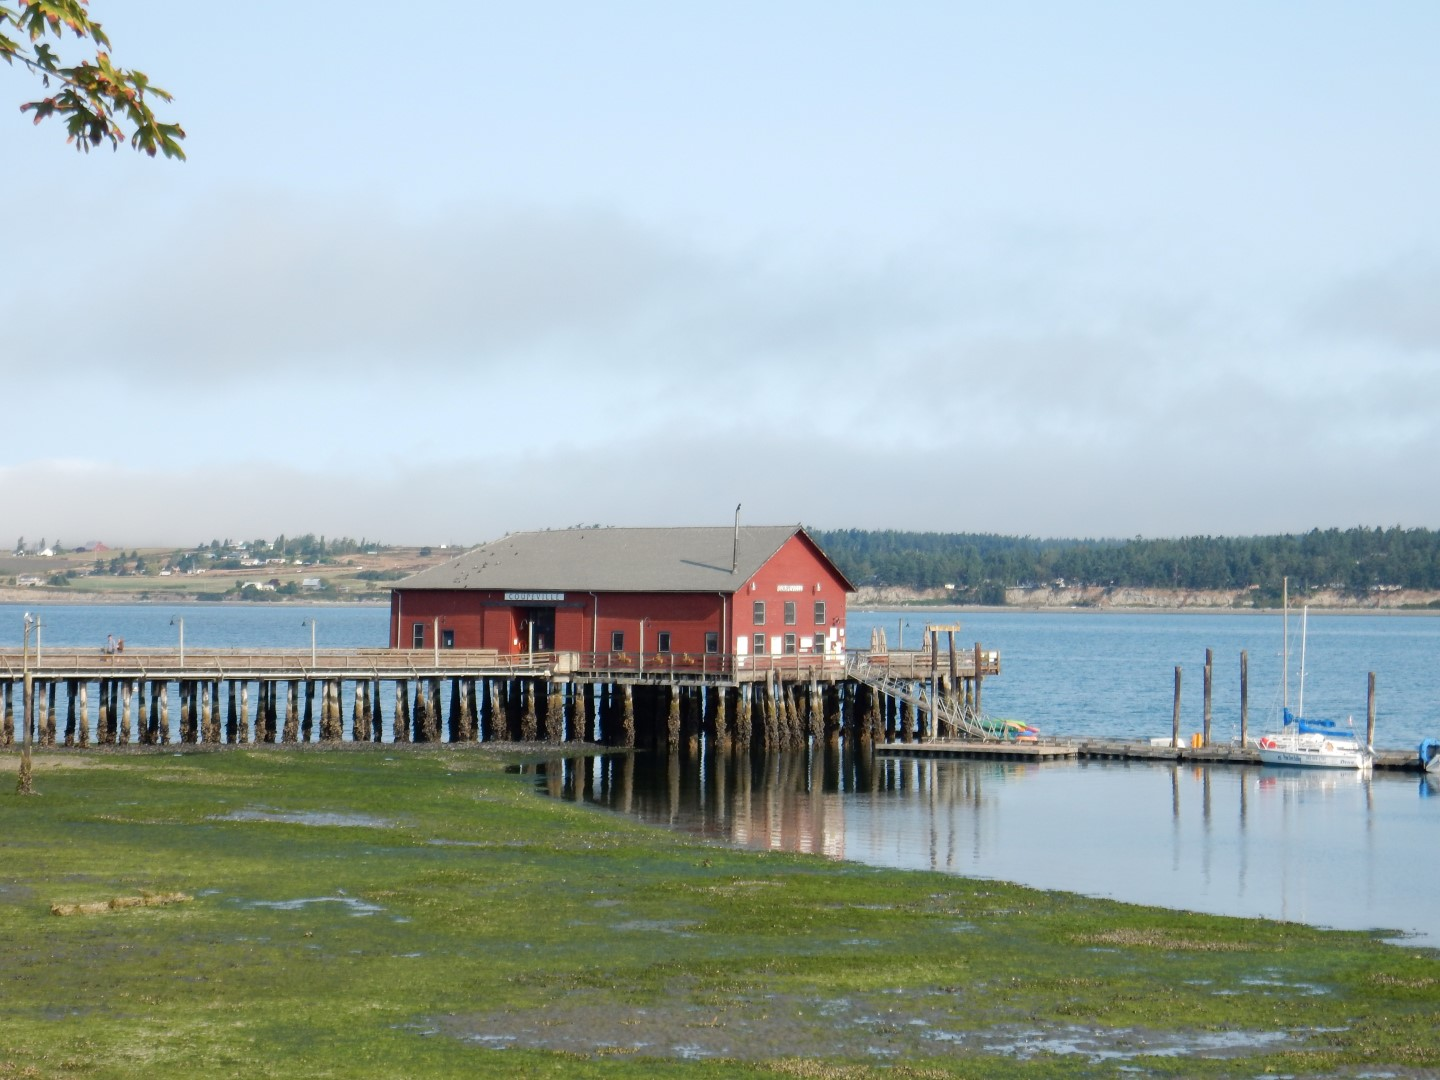 oupeville: The wharf in historic Coupeville on Whidbey Island Nancy Zaffaro